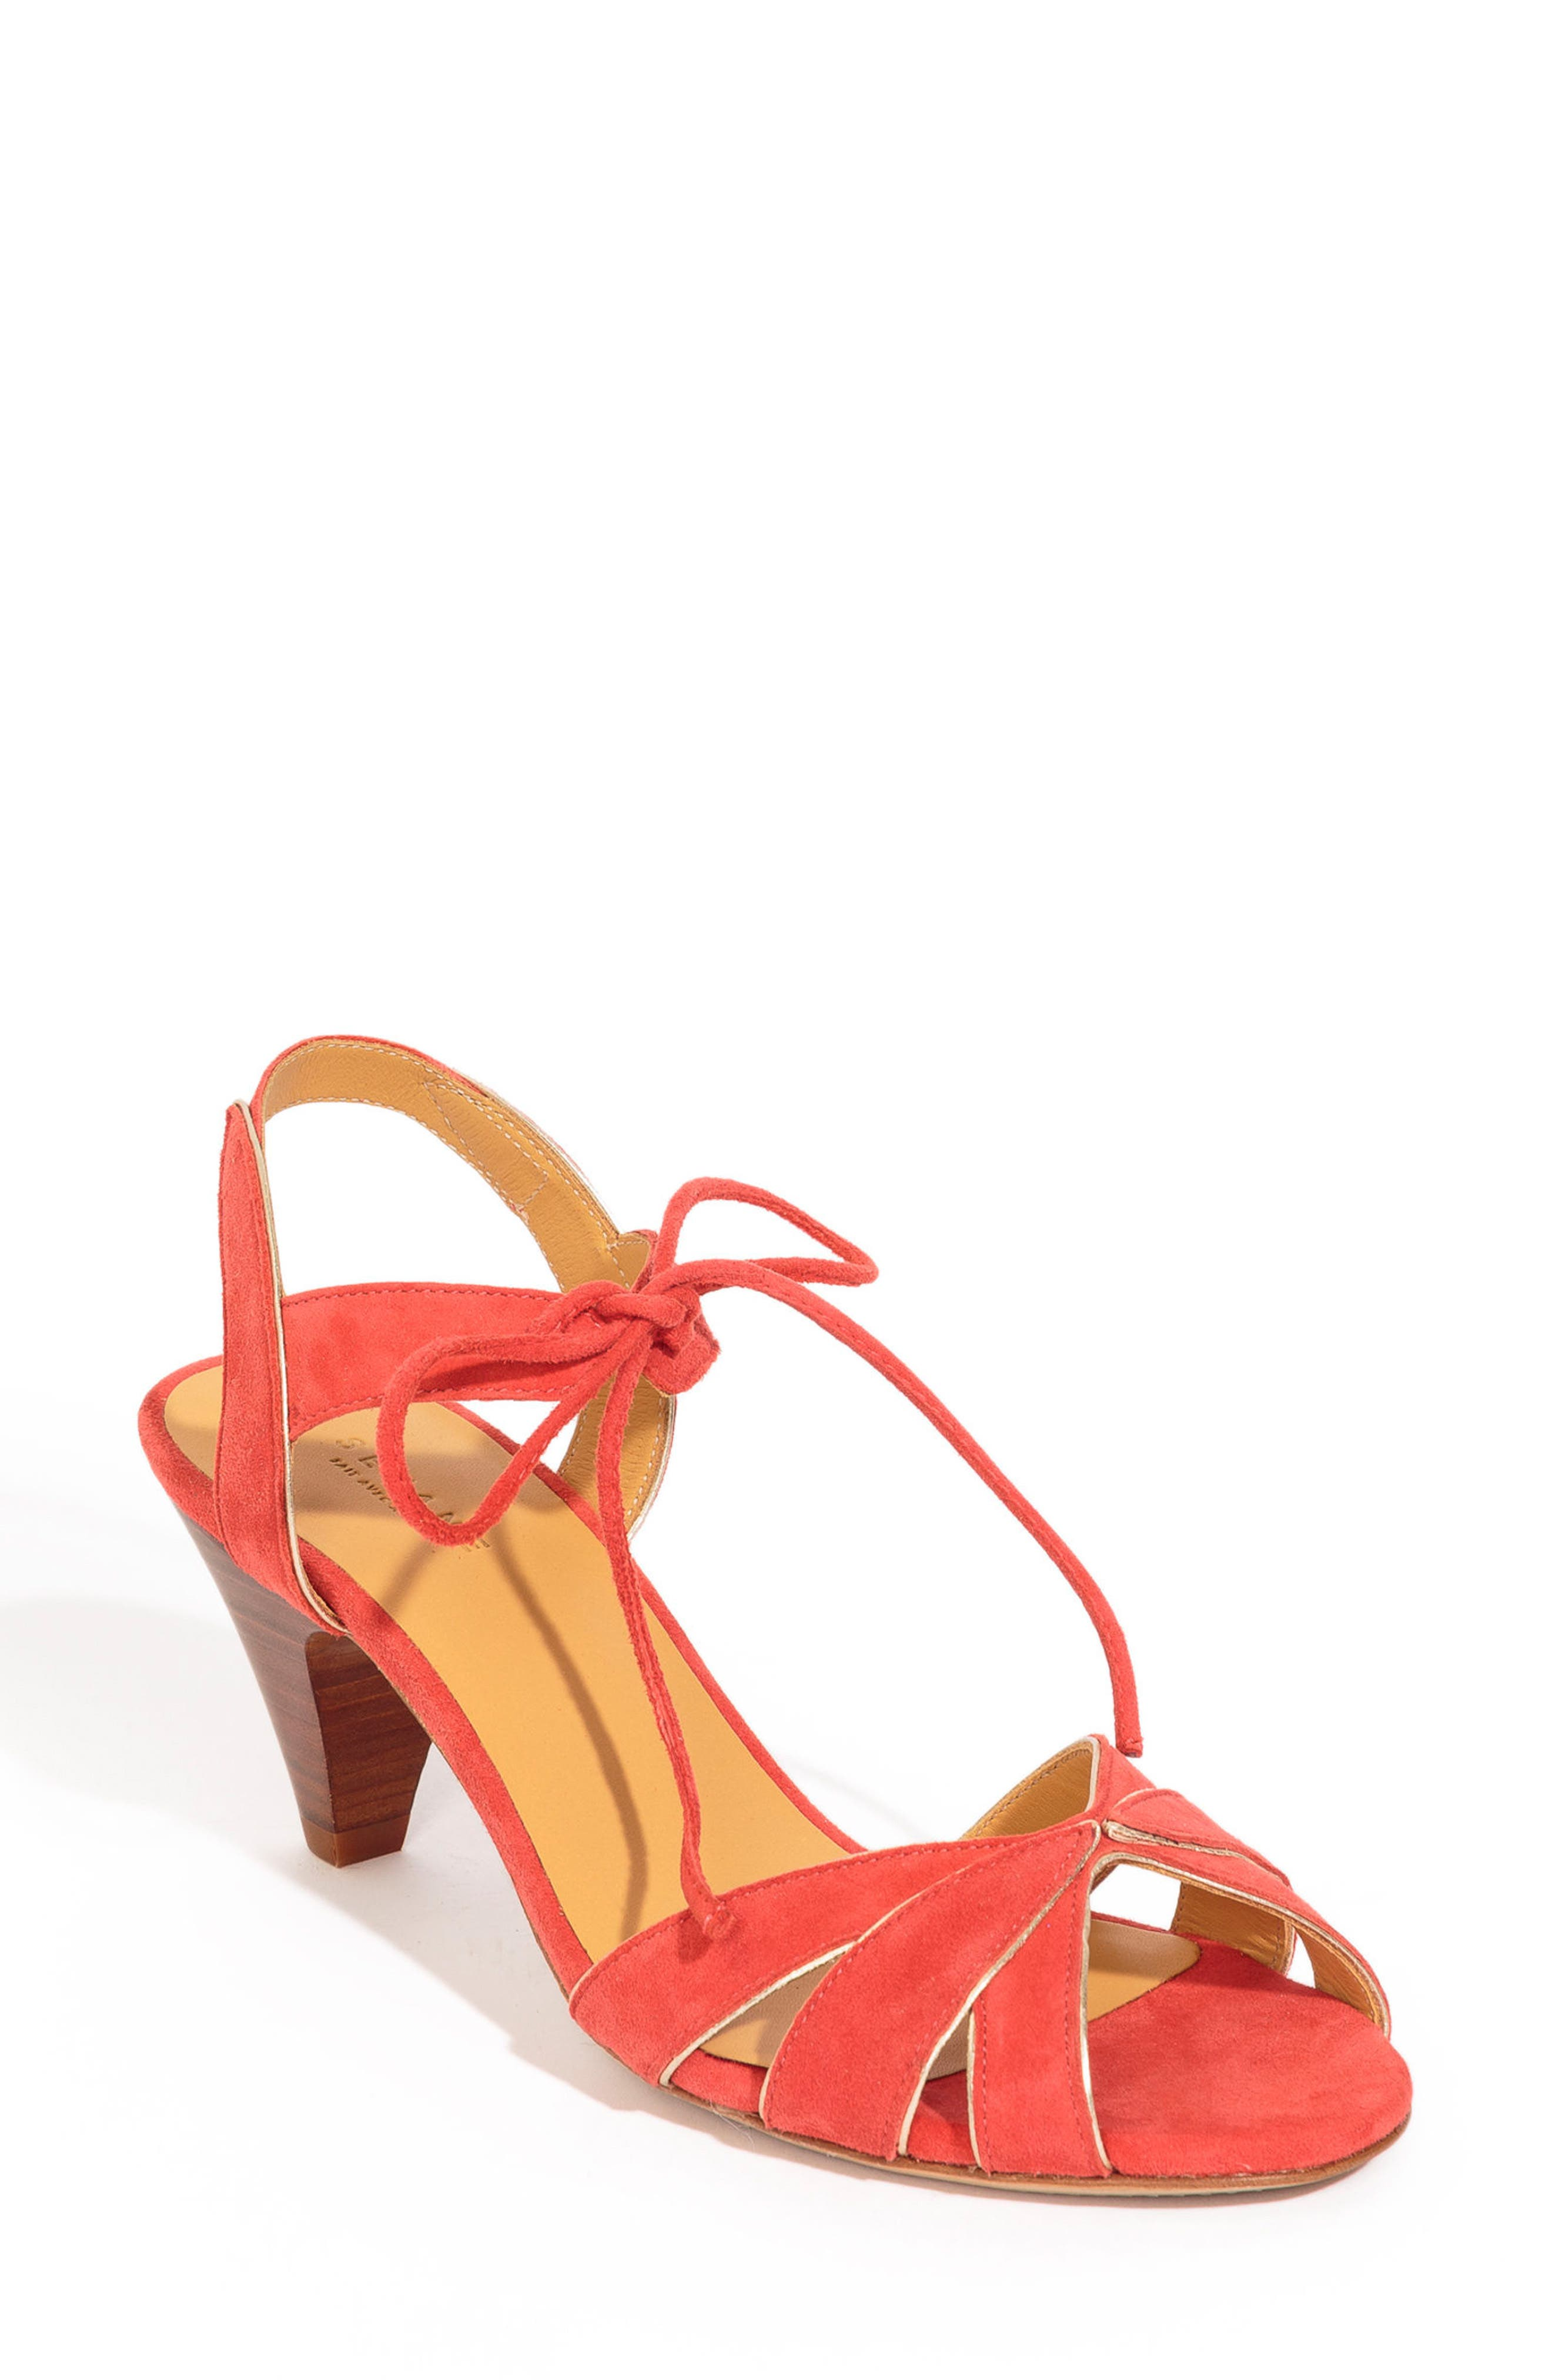 Victoire Ankle Tie Sandal,                         Main,                         color, CORAL RED SUEDE